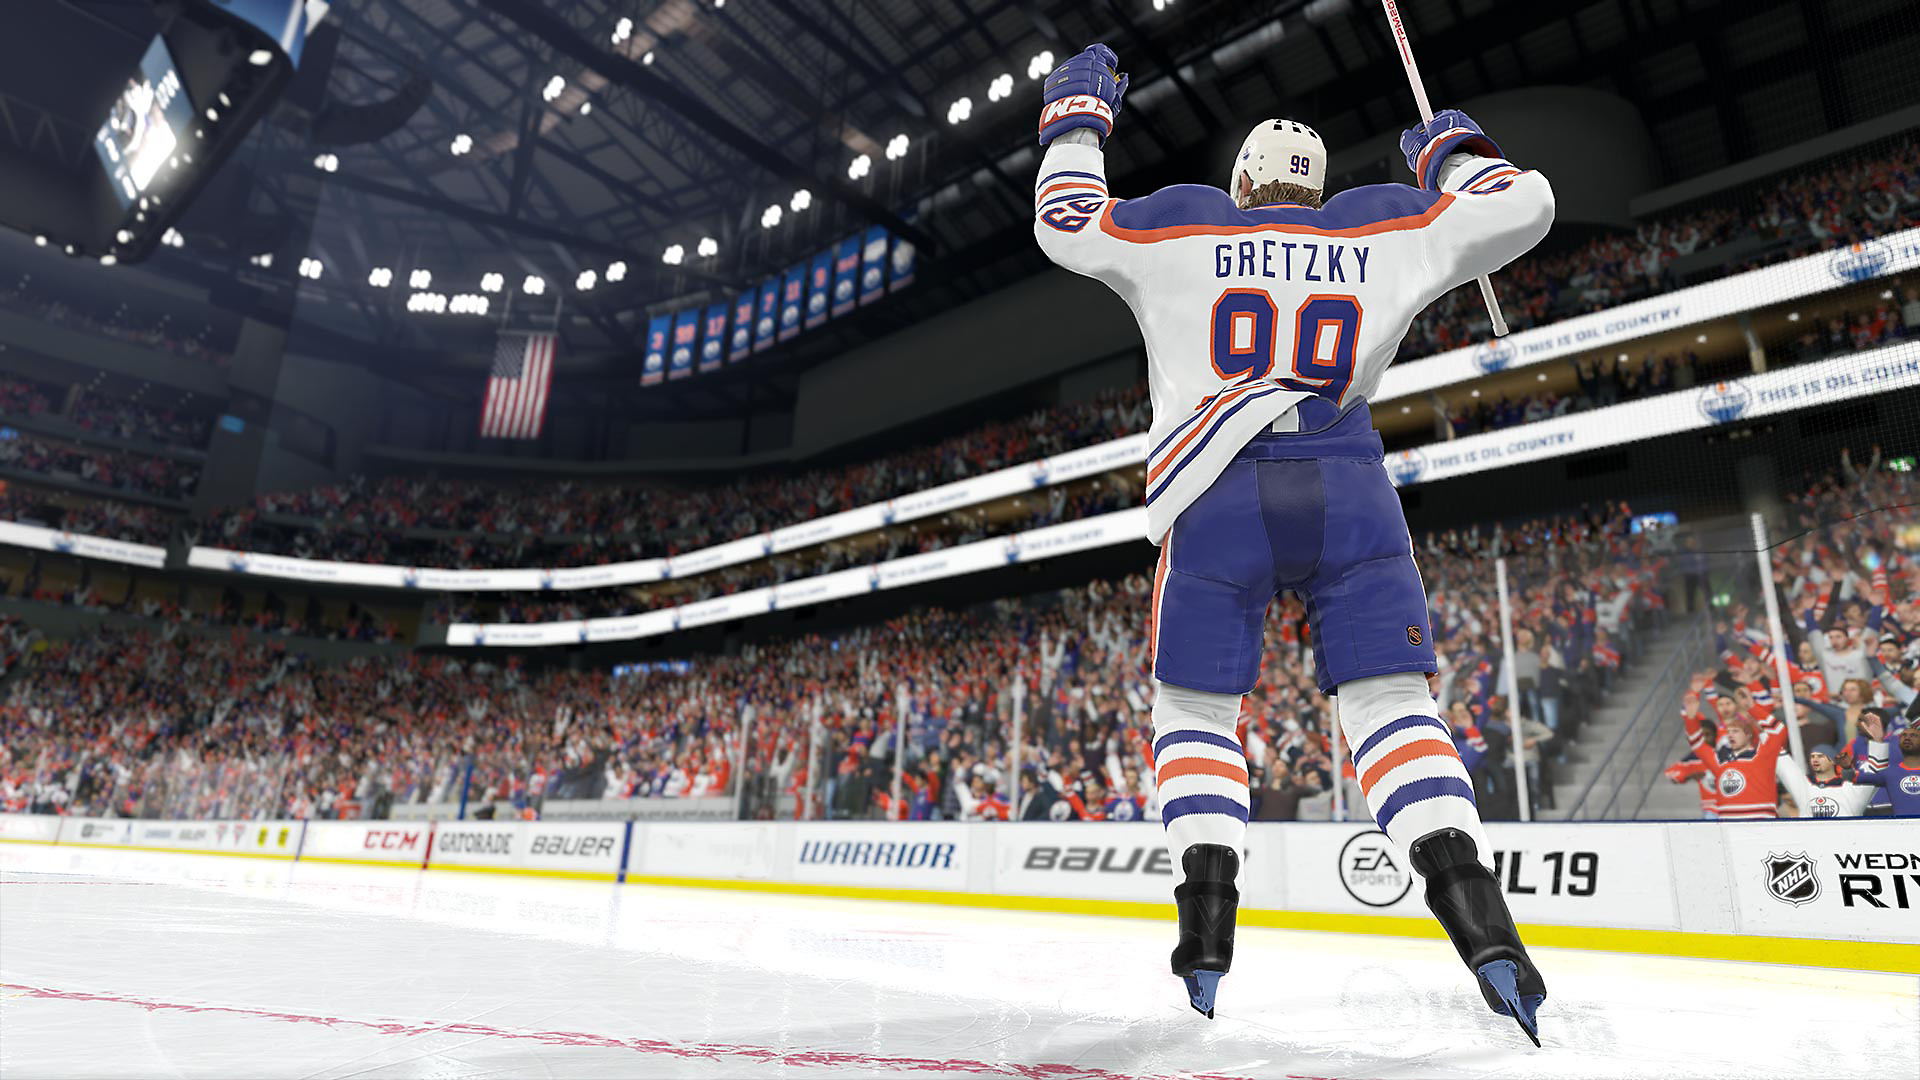 EA SPORTS NHL 19 Legends